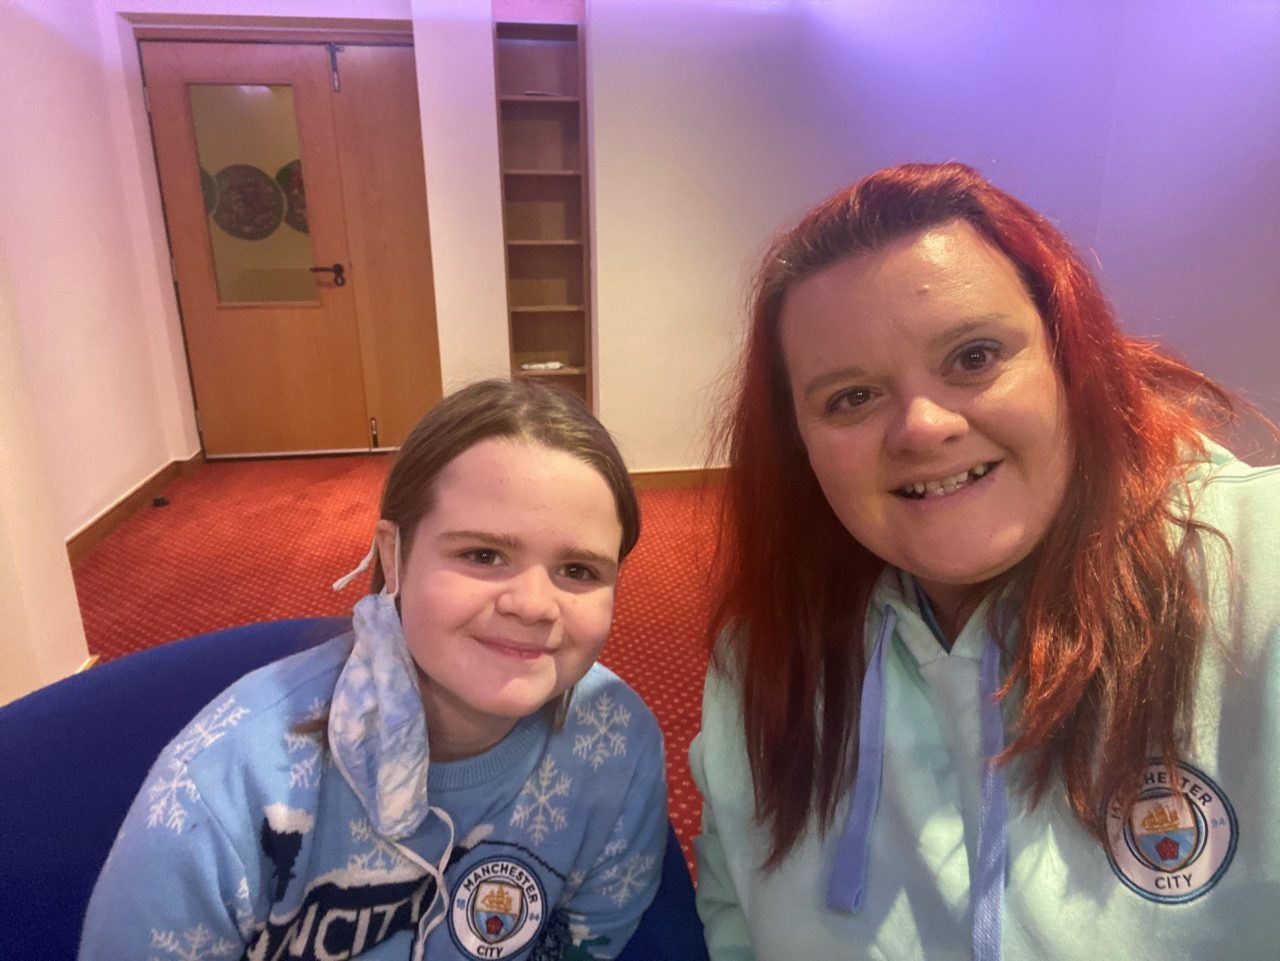 Manchester City spreads Christmas cheer on virtual video call to hospice families